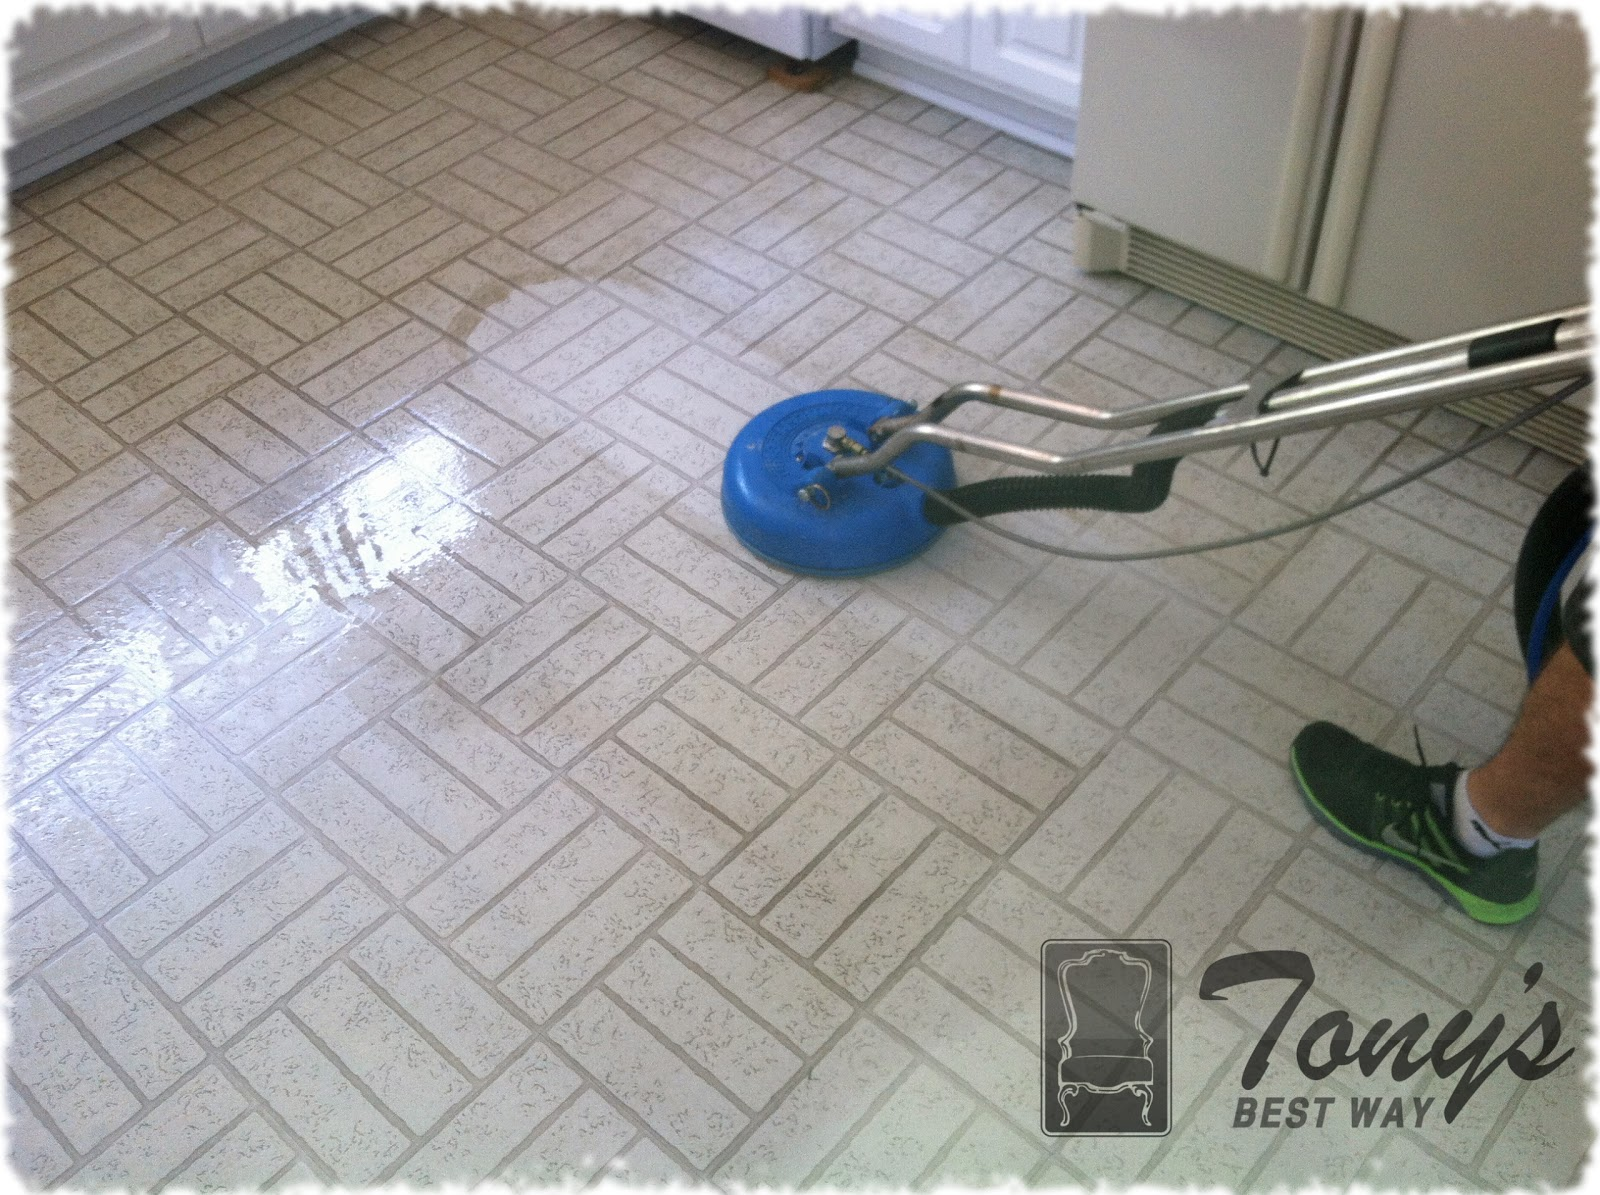 Best way to remove vinyl floor tile choice image home flooring best way to clean vinyl floor tile 40yearold vinyl floor gets cleaning facelift 7 photos1 video dailygadgetfo Image collections